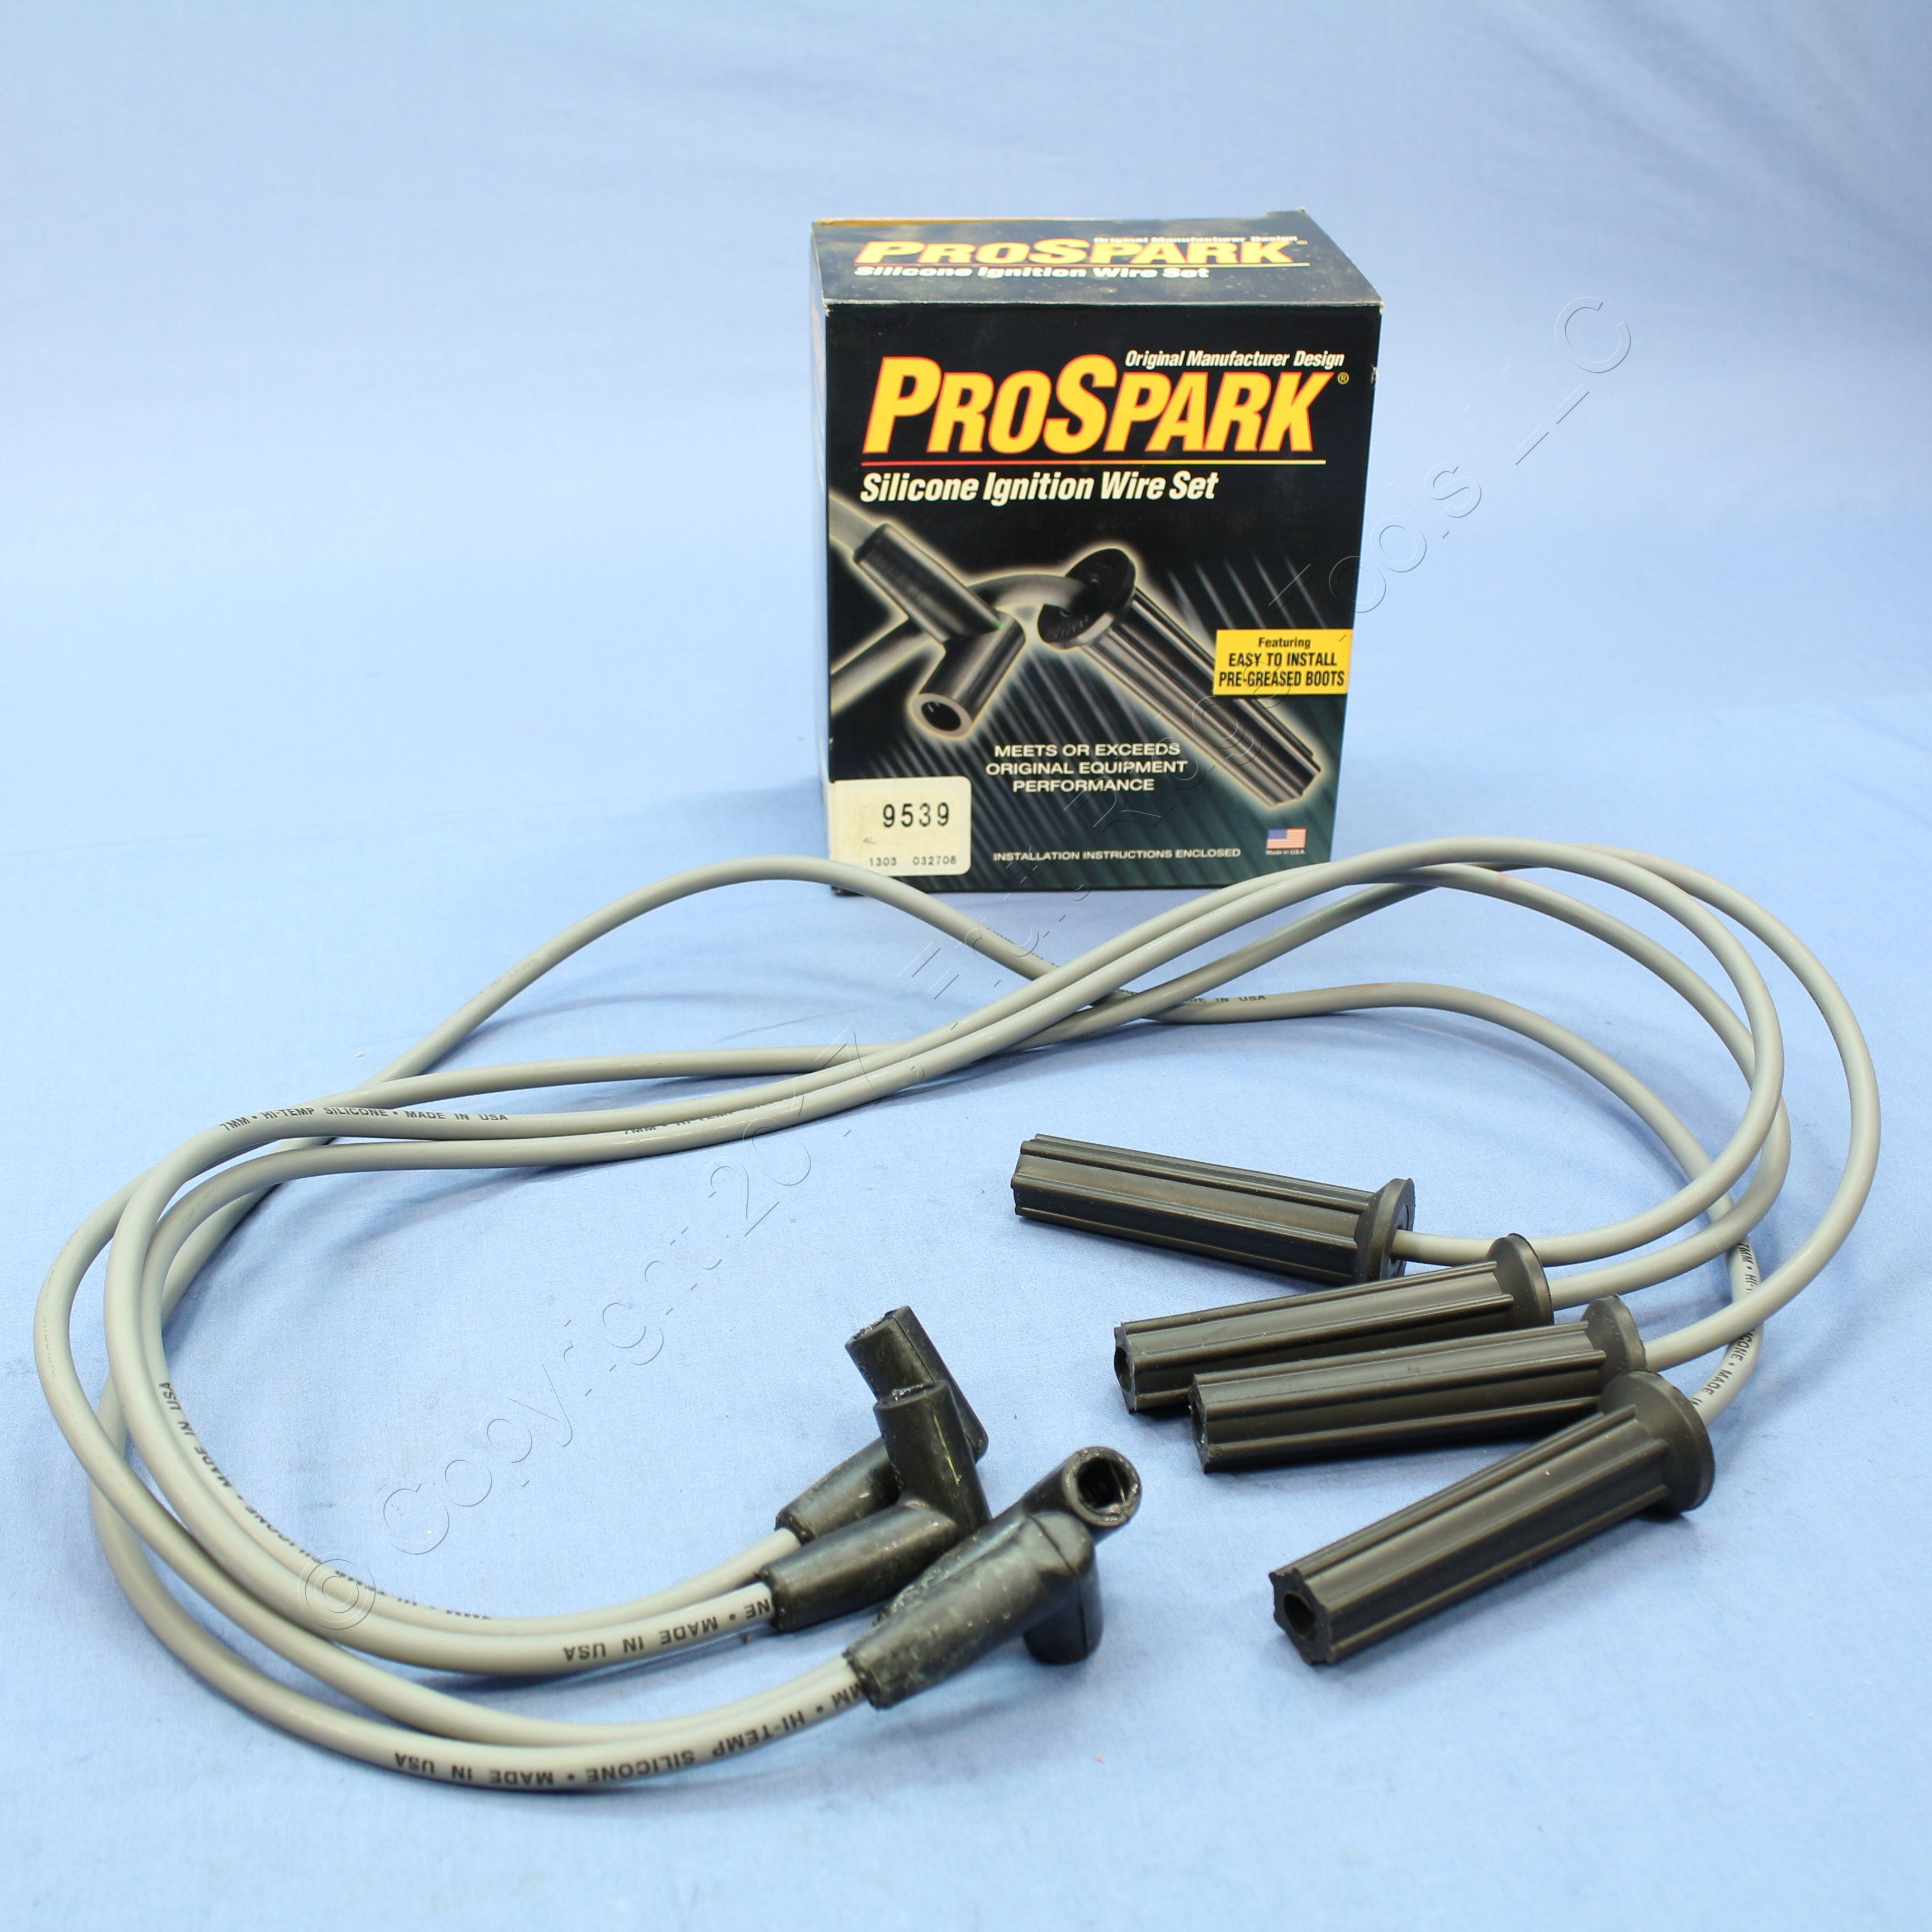 ProSpark Silicone Ignition Wire Set Part No 9214